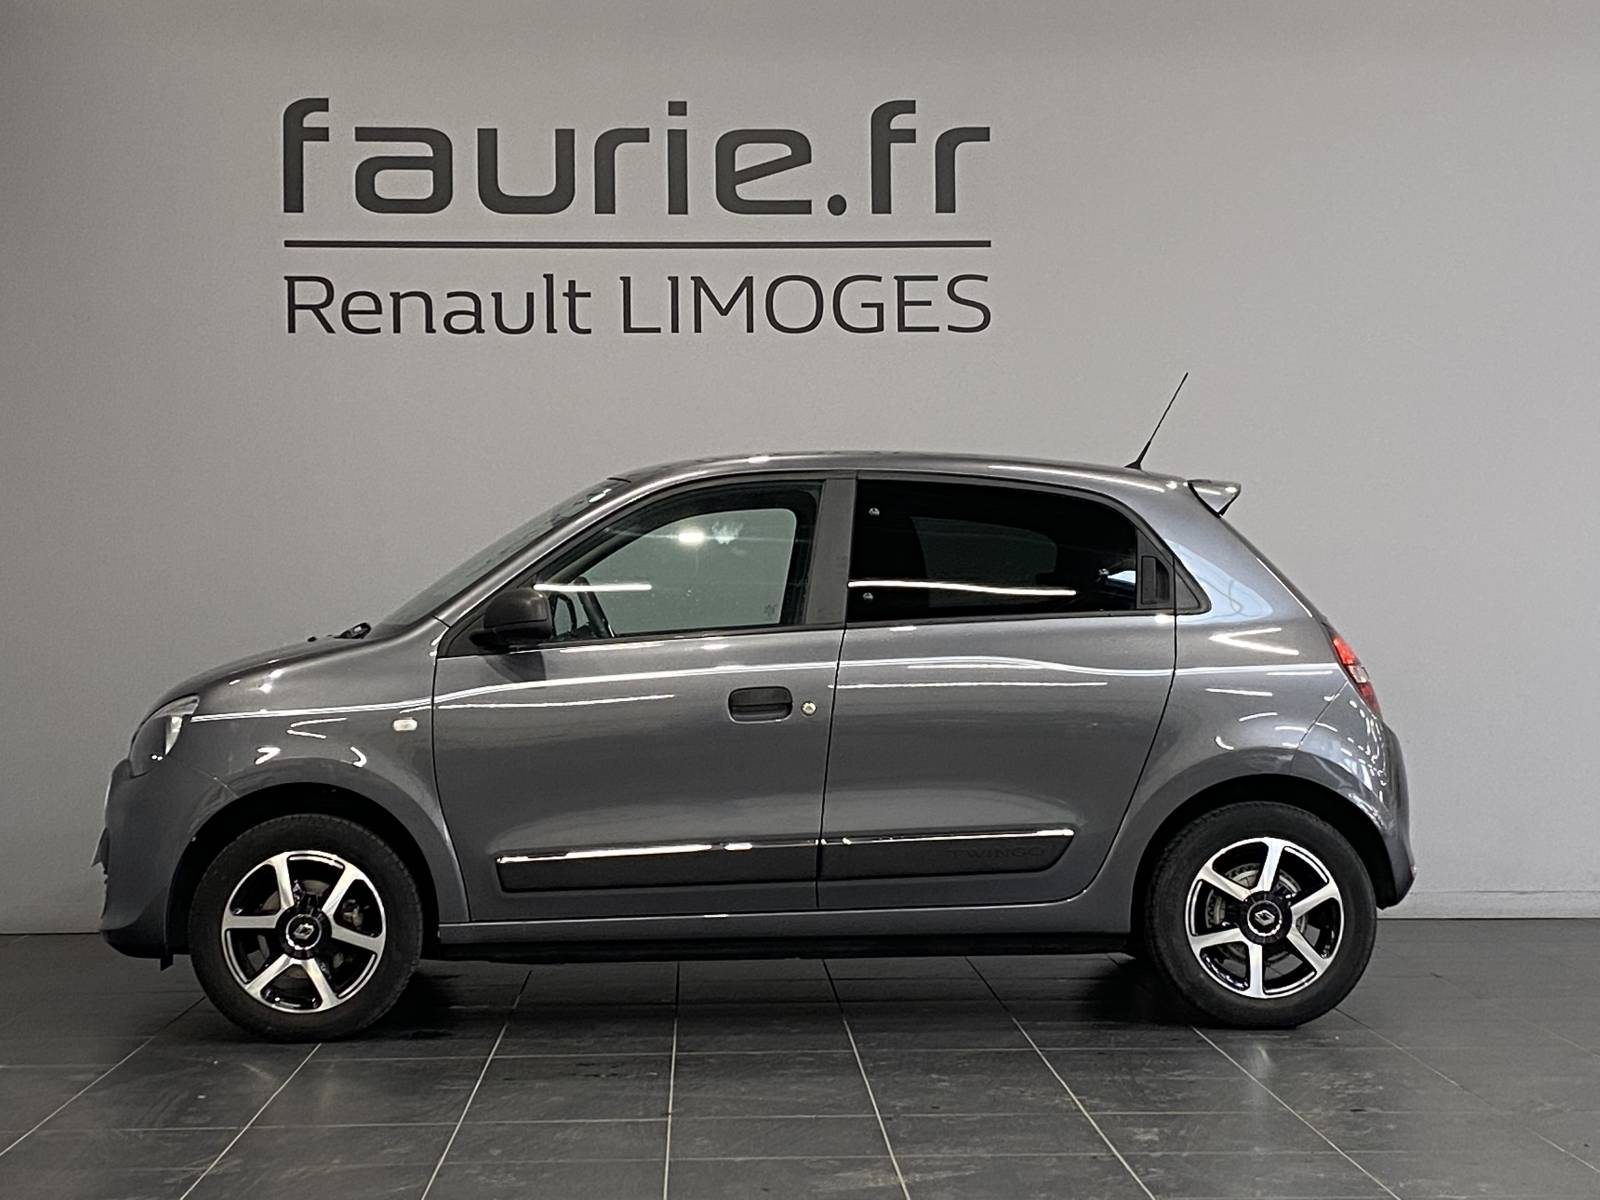 RENAULT Twingo III 0.9 TCe 90 Energy E6C - véhicule d'occasion - Site Internet Faurie - Renault - Faurie Auto Limoges - 87000 - Limoges - 6